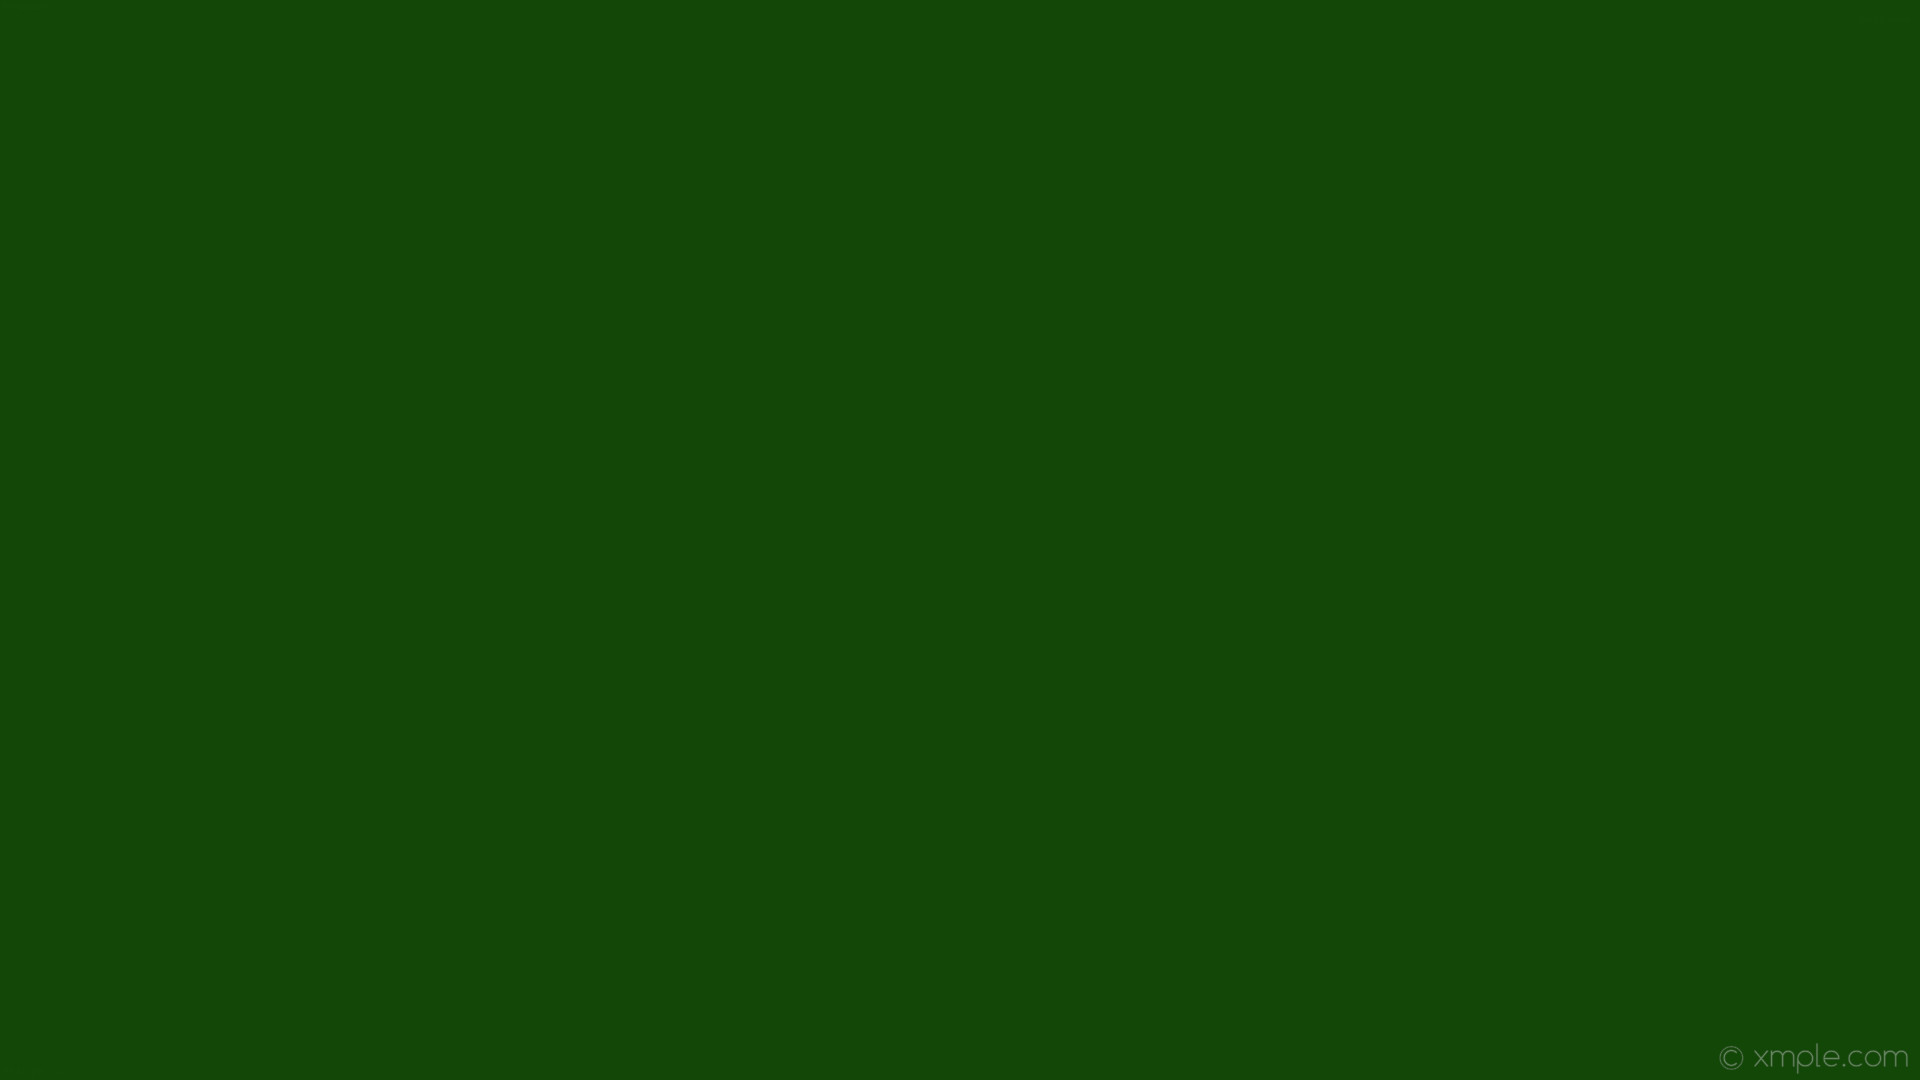 1920x1080 wallpaper single one colour plain green solid color dark green #124707